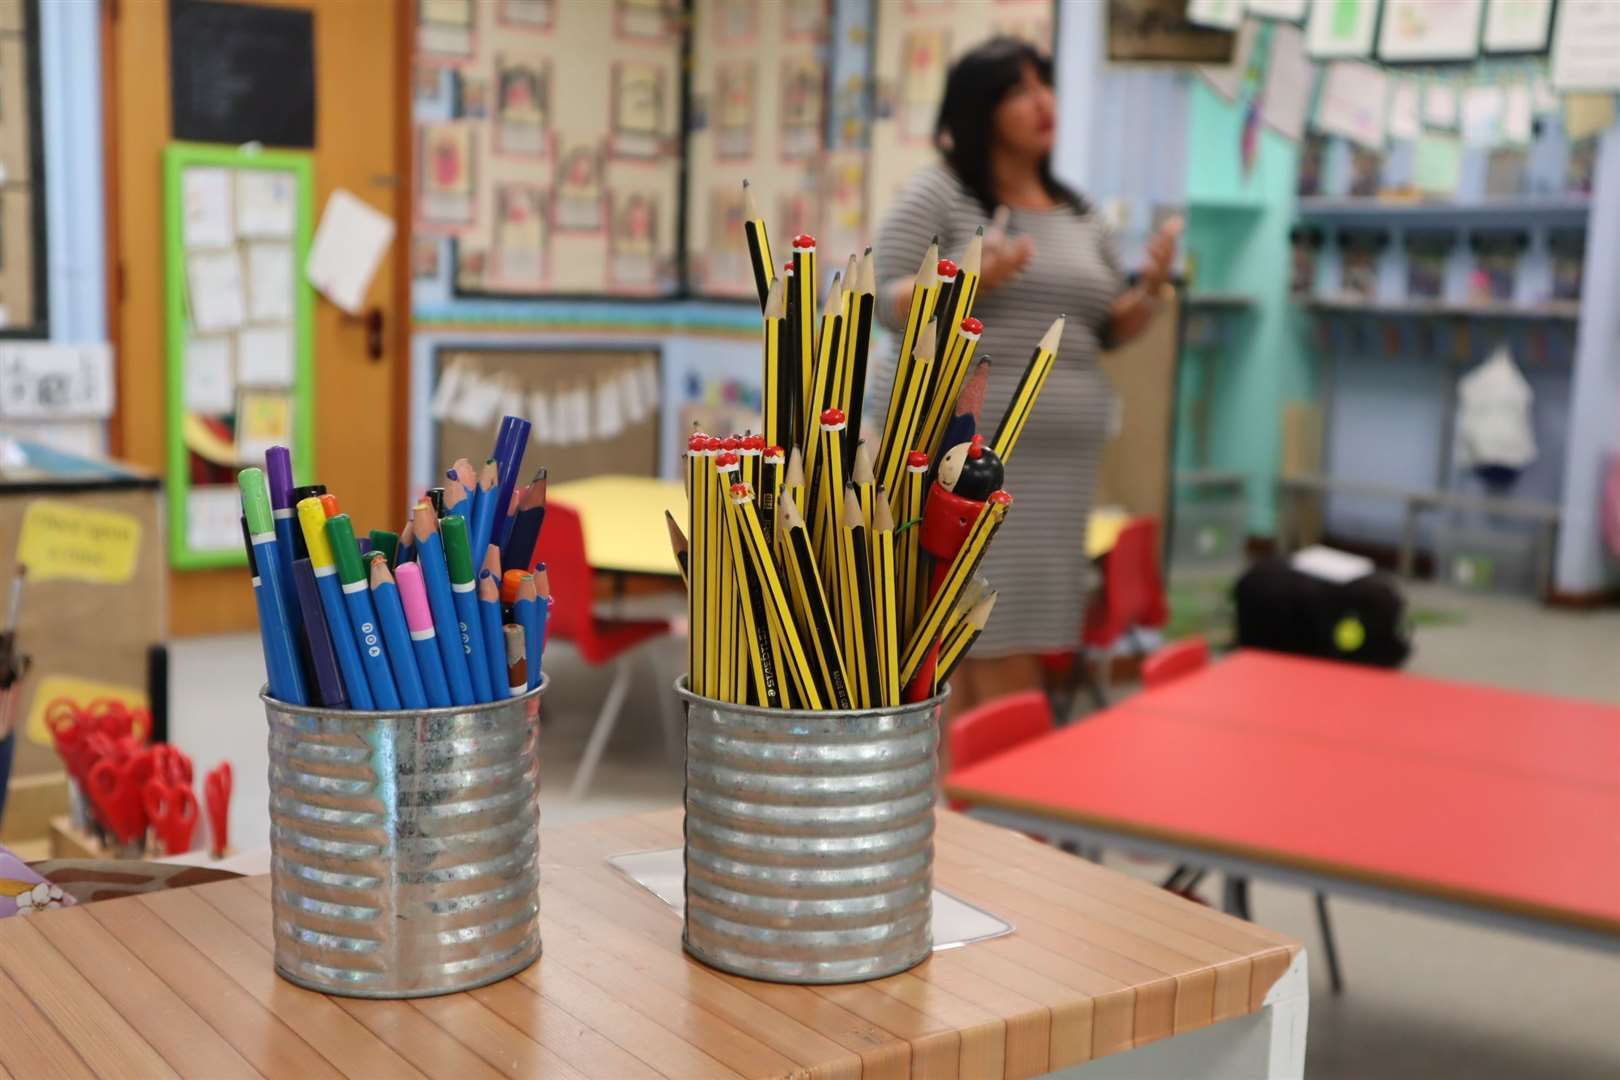 Tins of pencils are outlawed in the new lockdown primary classroom